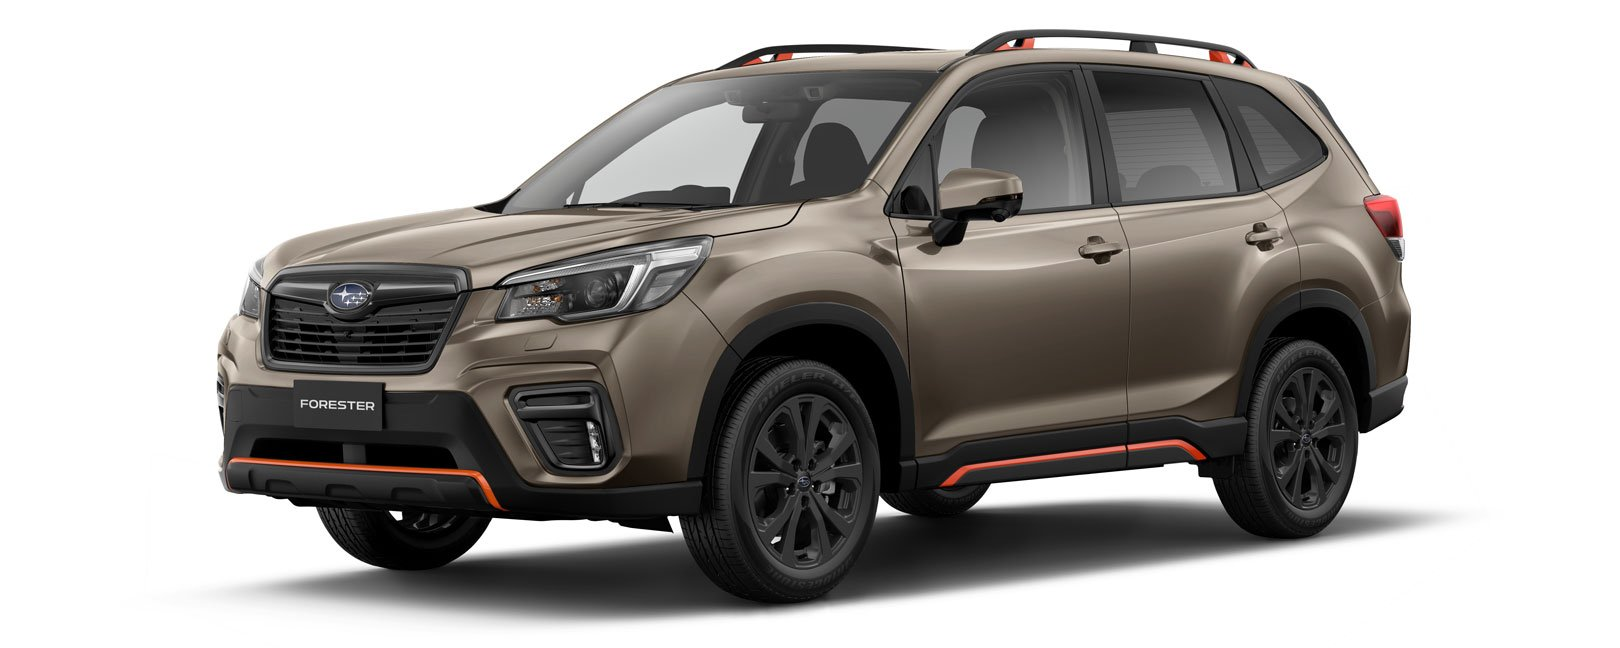 Forester X Sport in sepia bronze